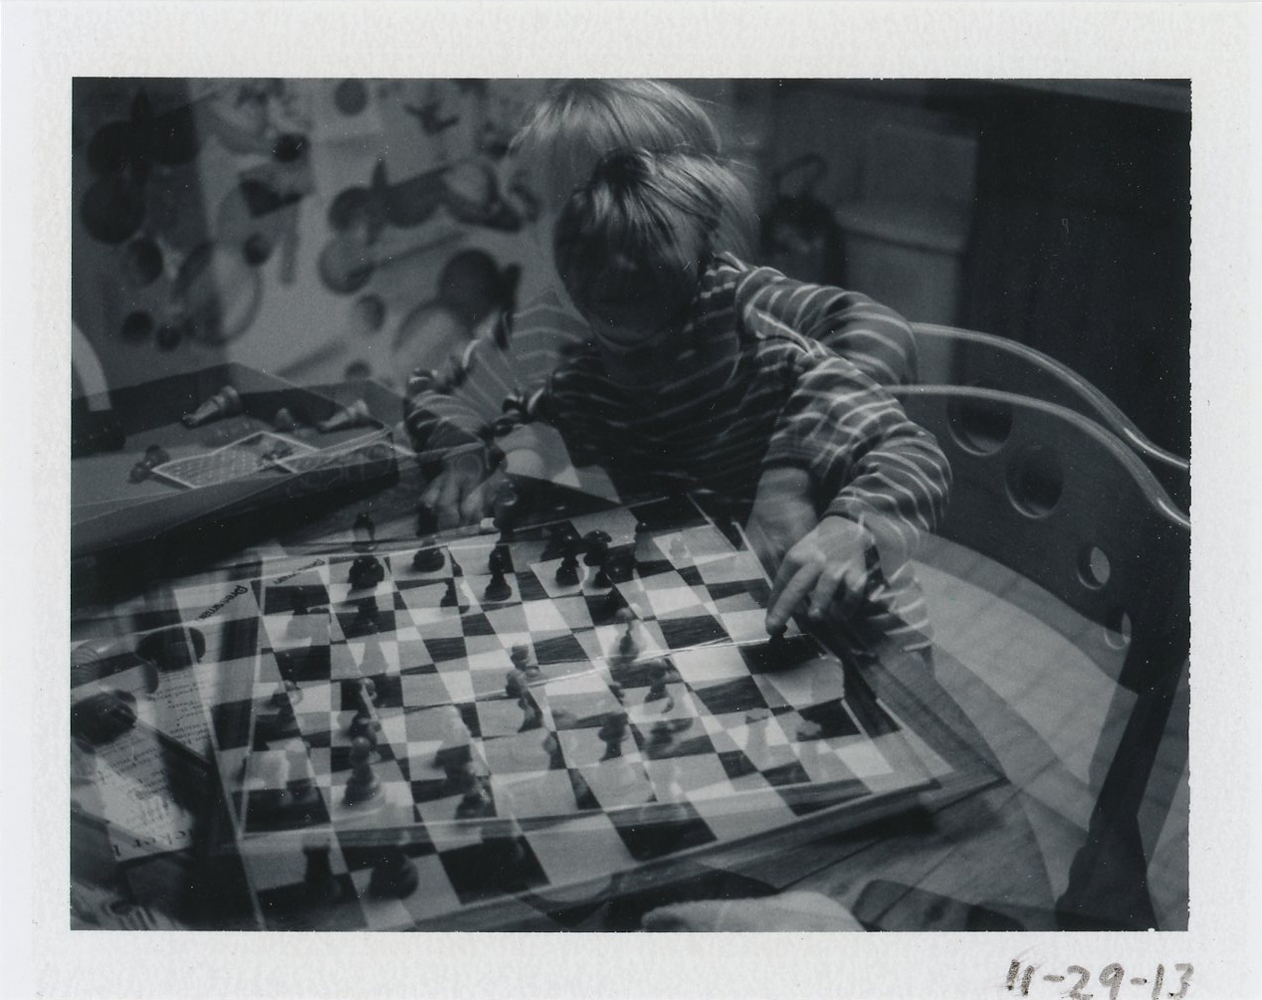 Cy Playing Chess, 2013